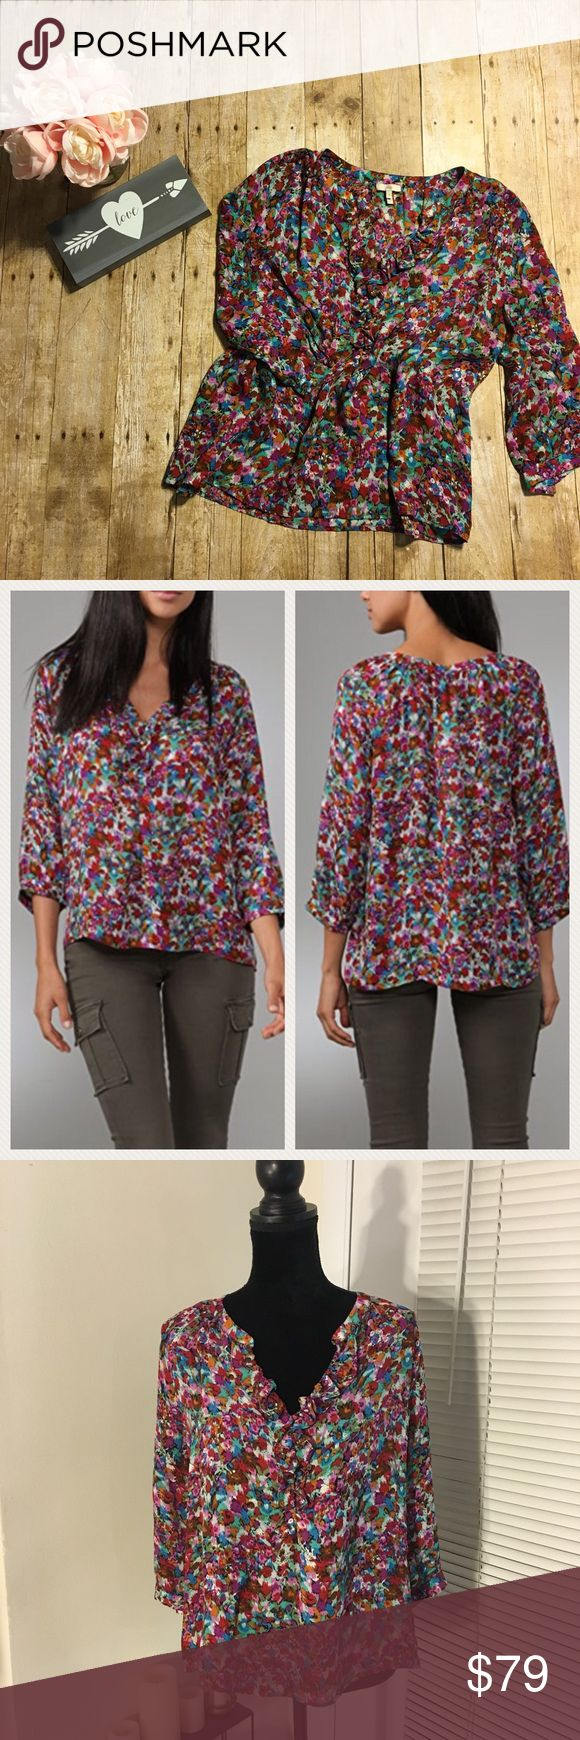 Joie Magpie Floral Calabasas Silk Blouse Joie Magpie Floral Calabasas blouse. Bright watercolor pattern. 3/4 sleeves with double button closure at the cuff. Slim ruffle frames the v-neck. Three button closure at the neckline. Joie Tops Blouses